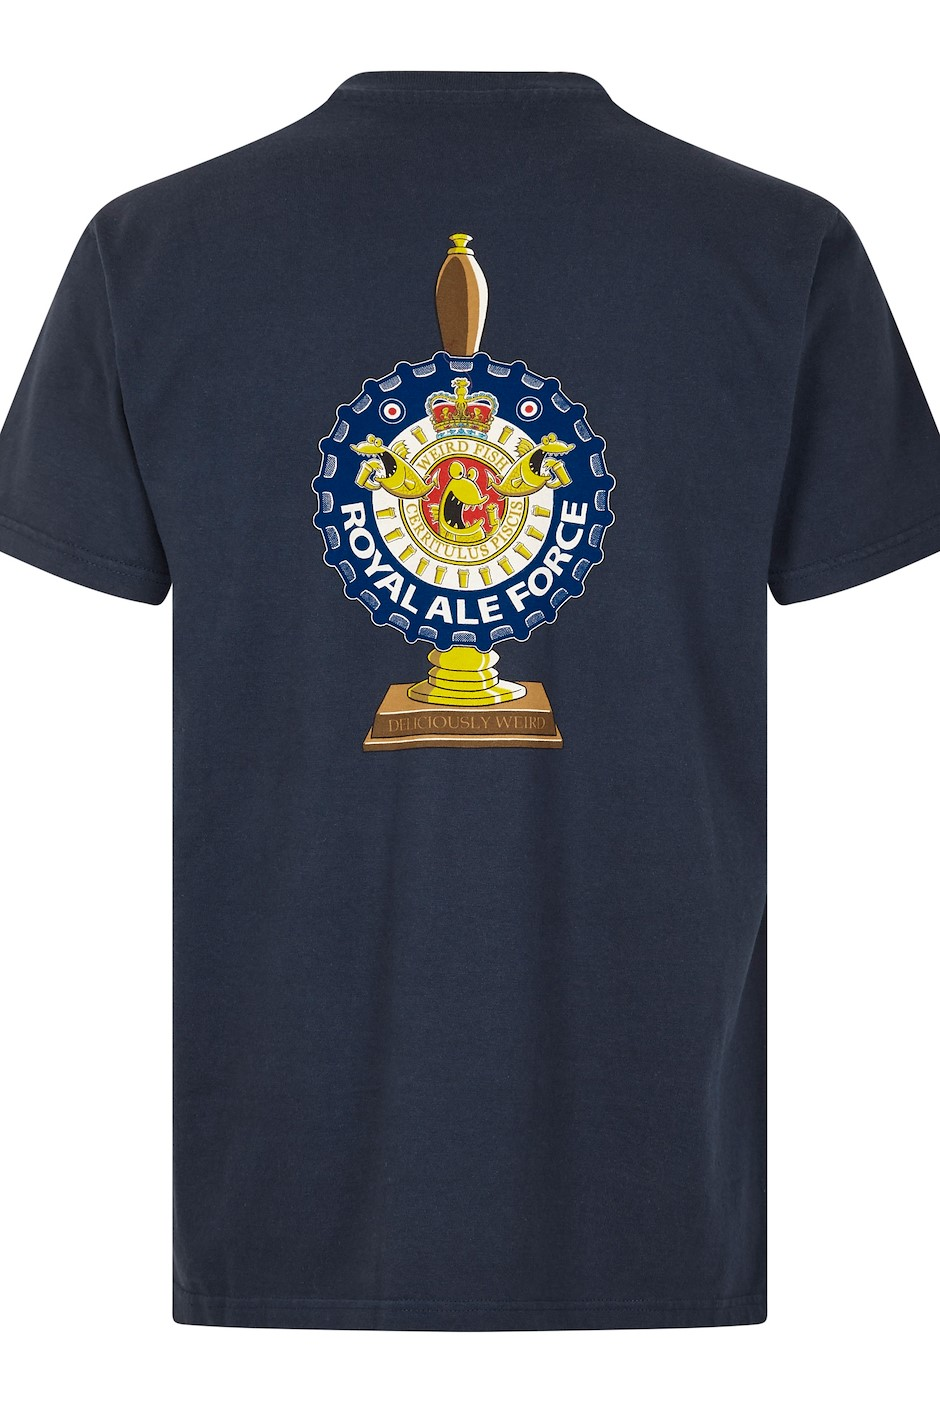 Royal Ale Force Artist T-Shirt Navy